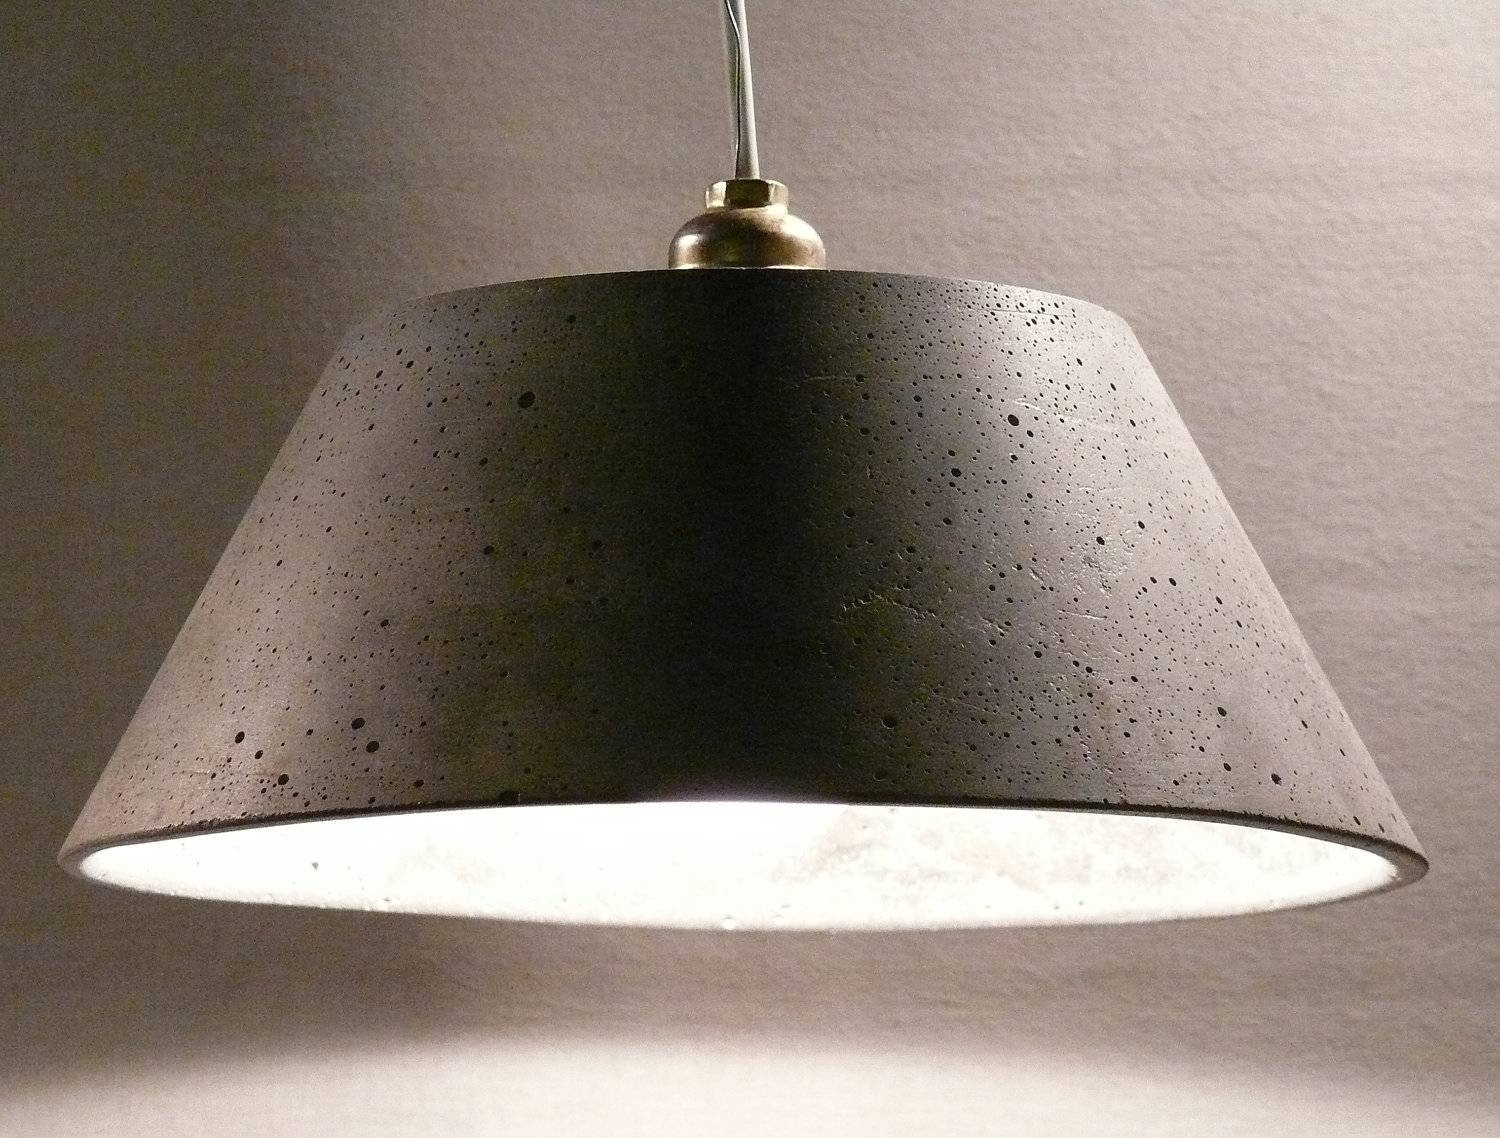 Creative Of Concrete Pendant Light With Home Decorating intended for Large Dome Pendant Lights (Image 5 of 15)